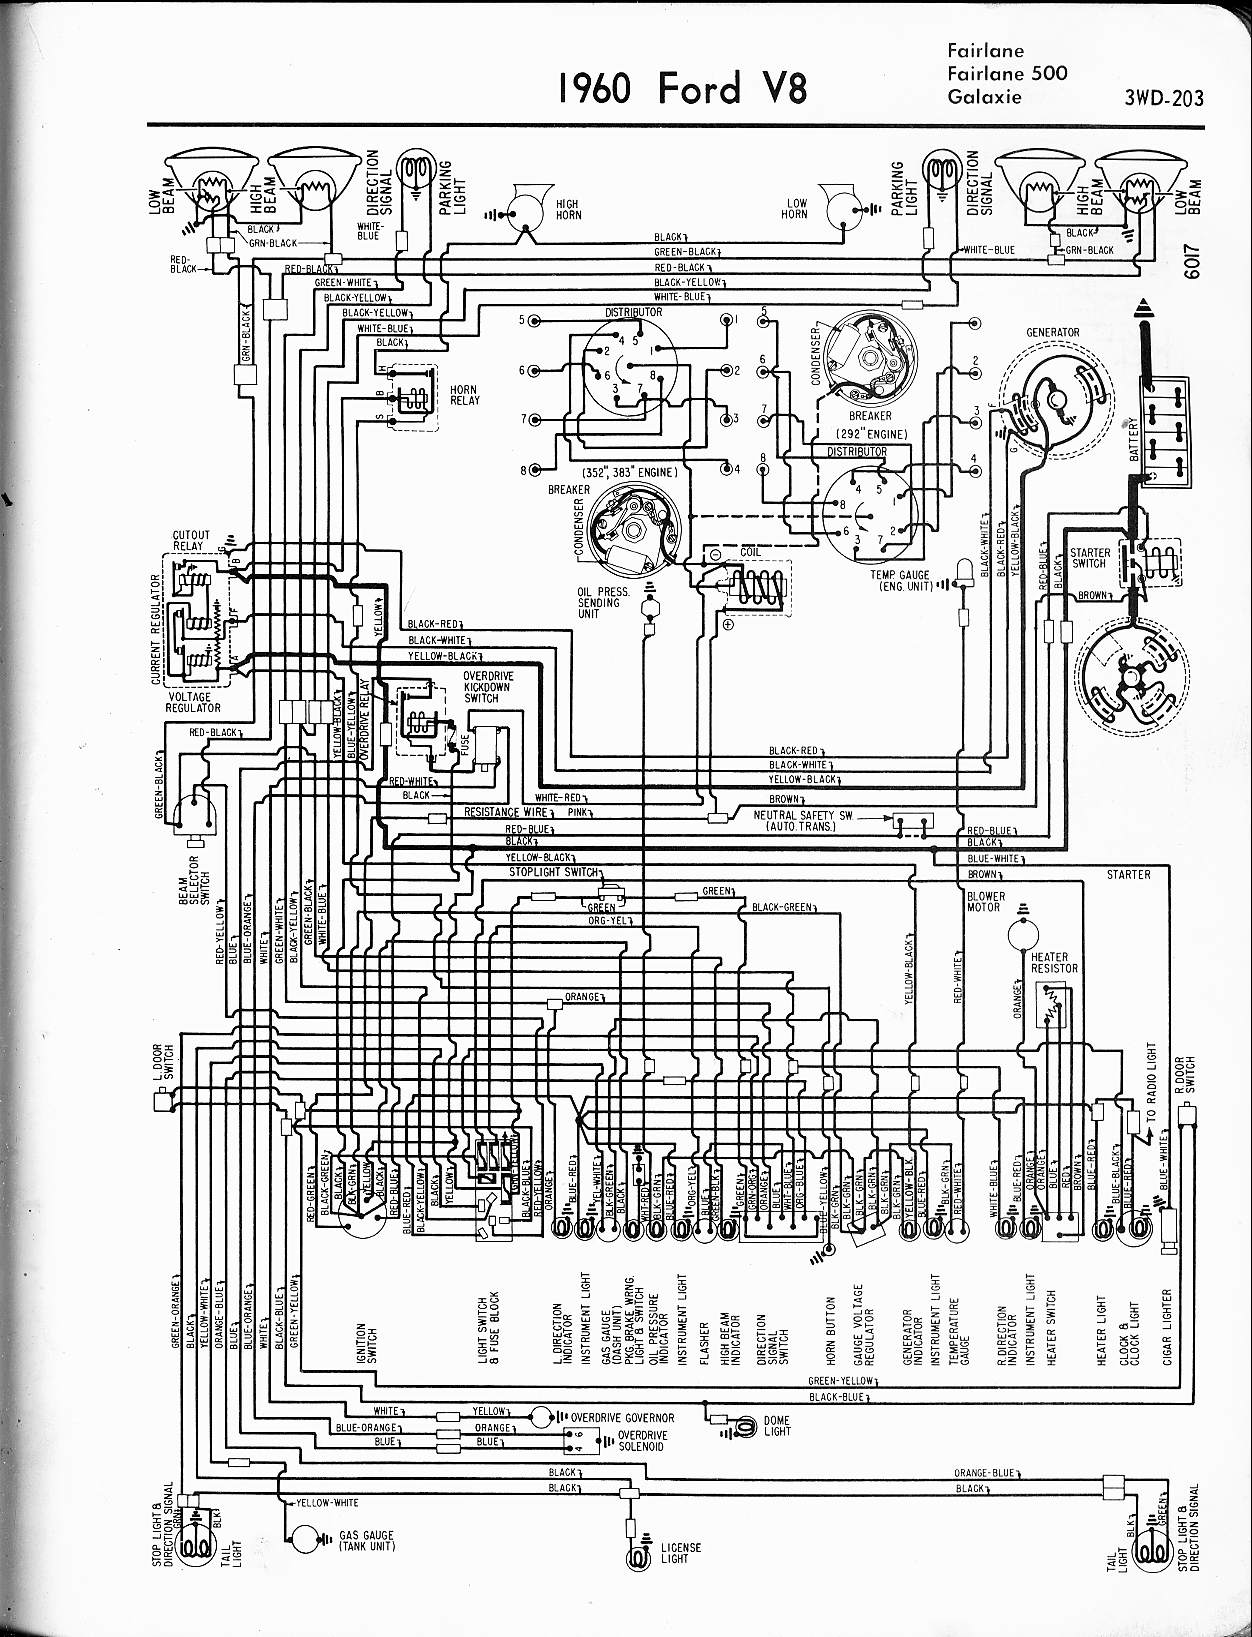 57 65 ford wiring diagrams Ford Electrical Diagram 1960 v8 fairlane, 500, galaxie